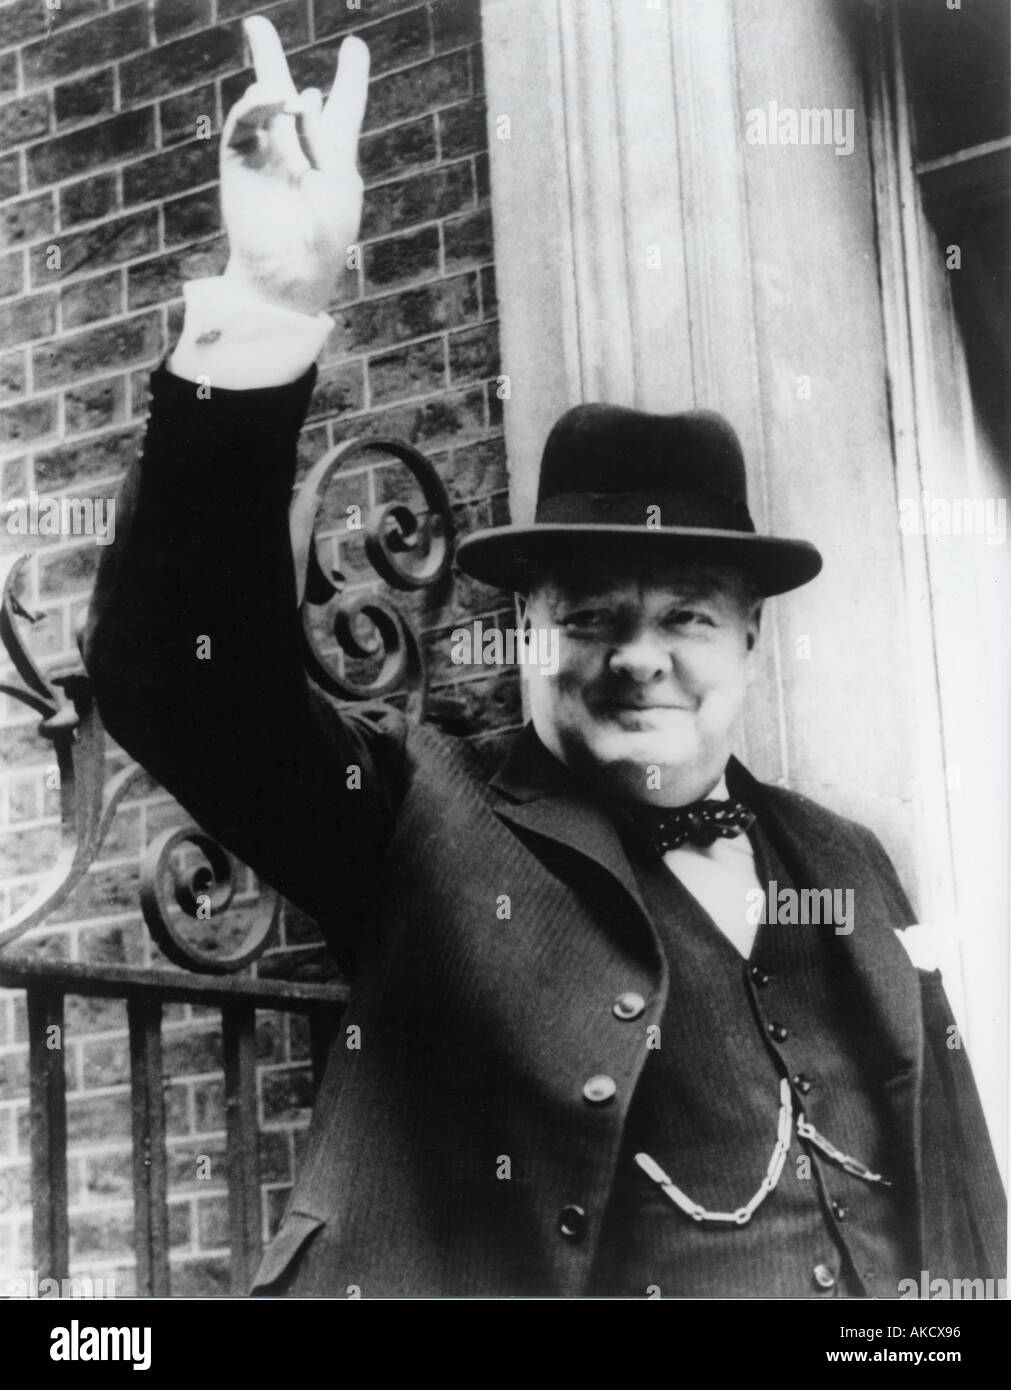 WINSTON CHURCHILL gives his famous V for Victory sign on the steps of No 10 Downing Street in 1945 - Stock Image